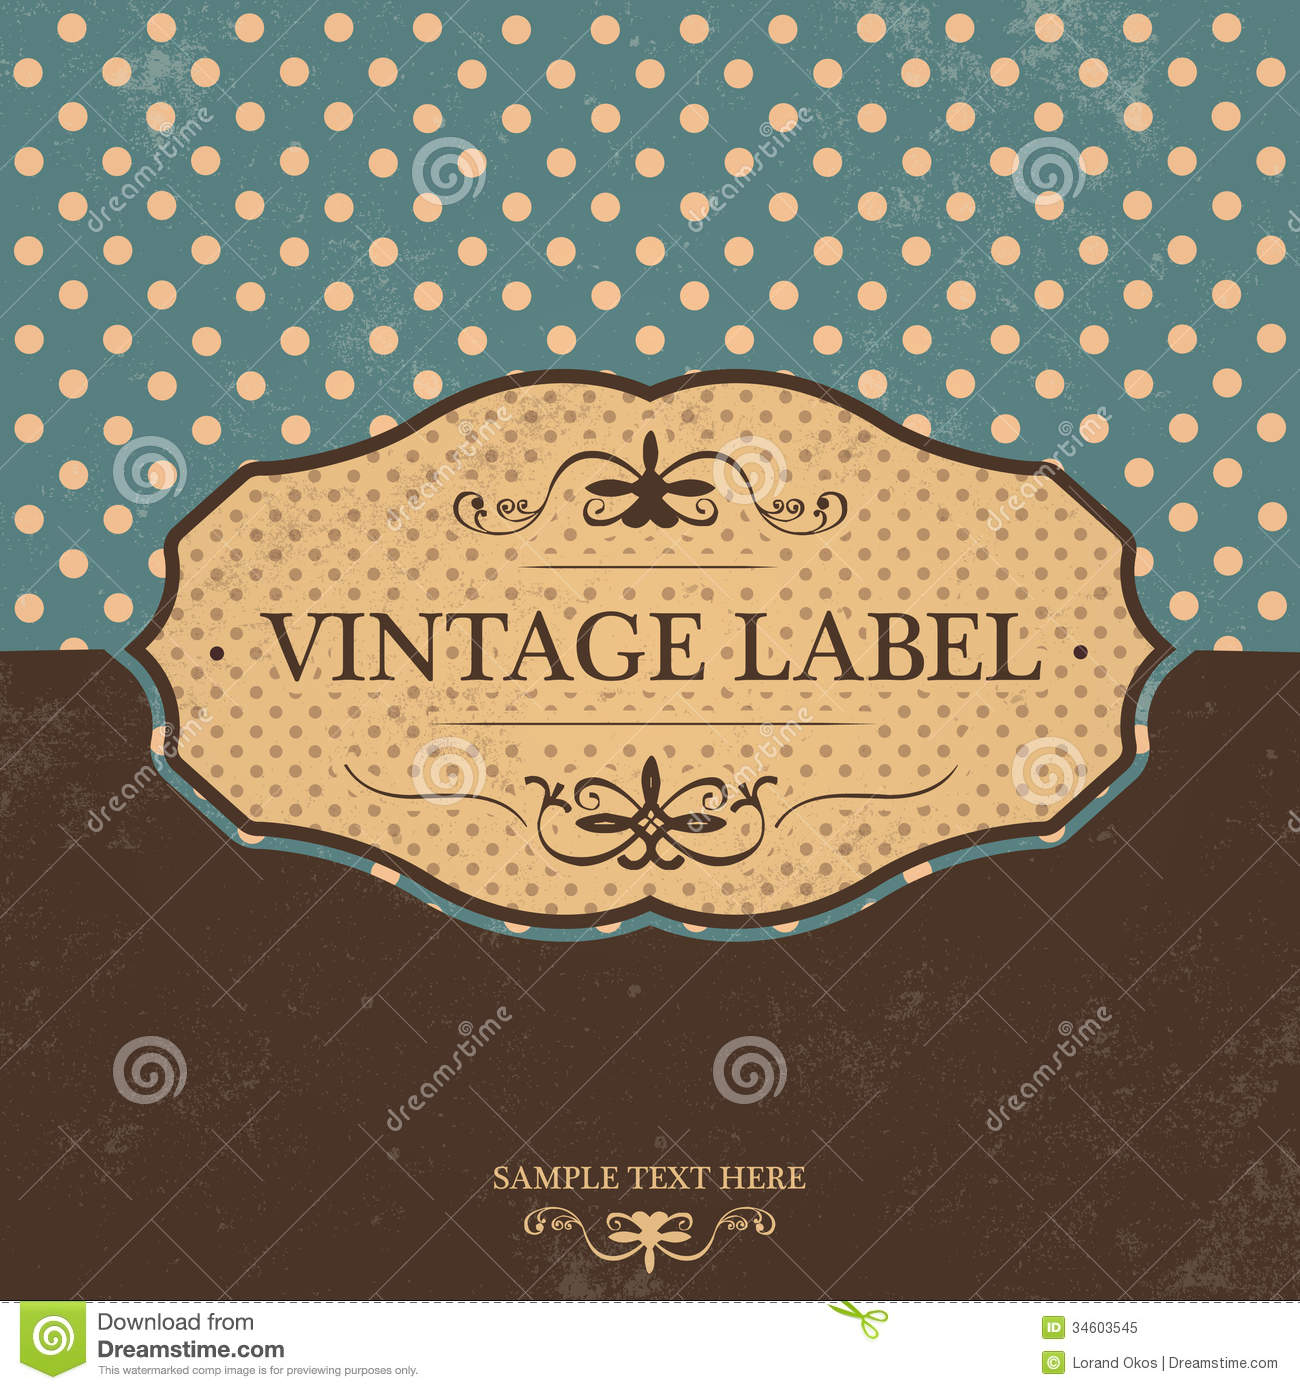 vintage label design with retro background royalty free